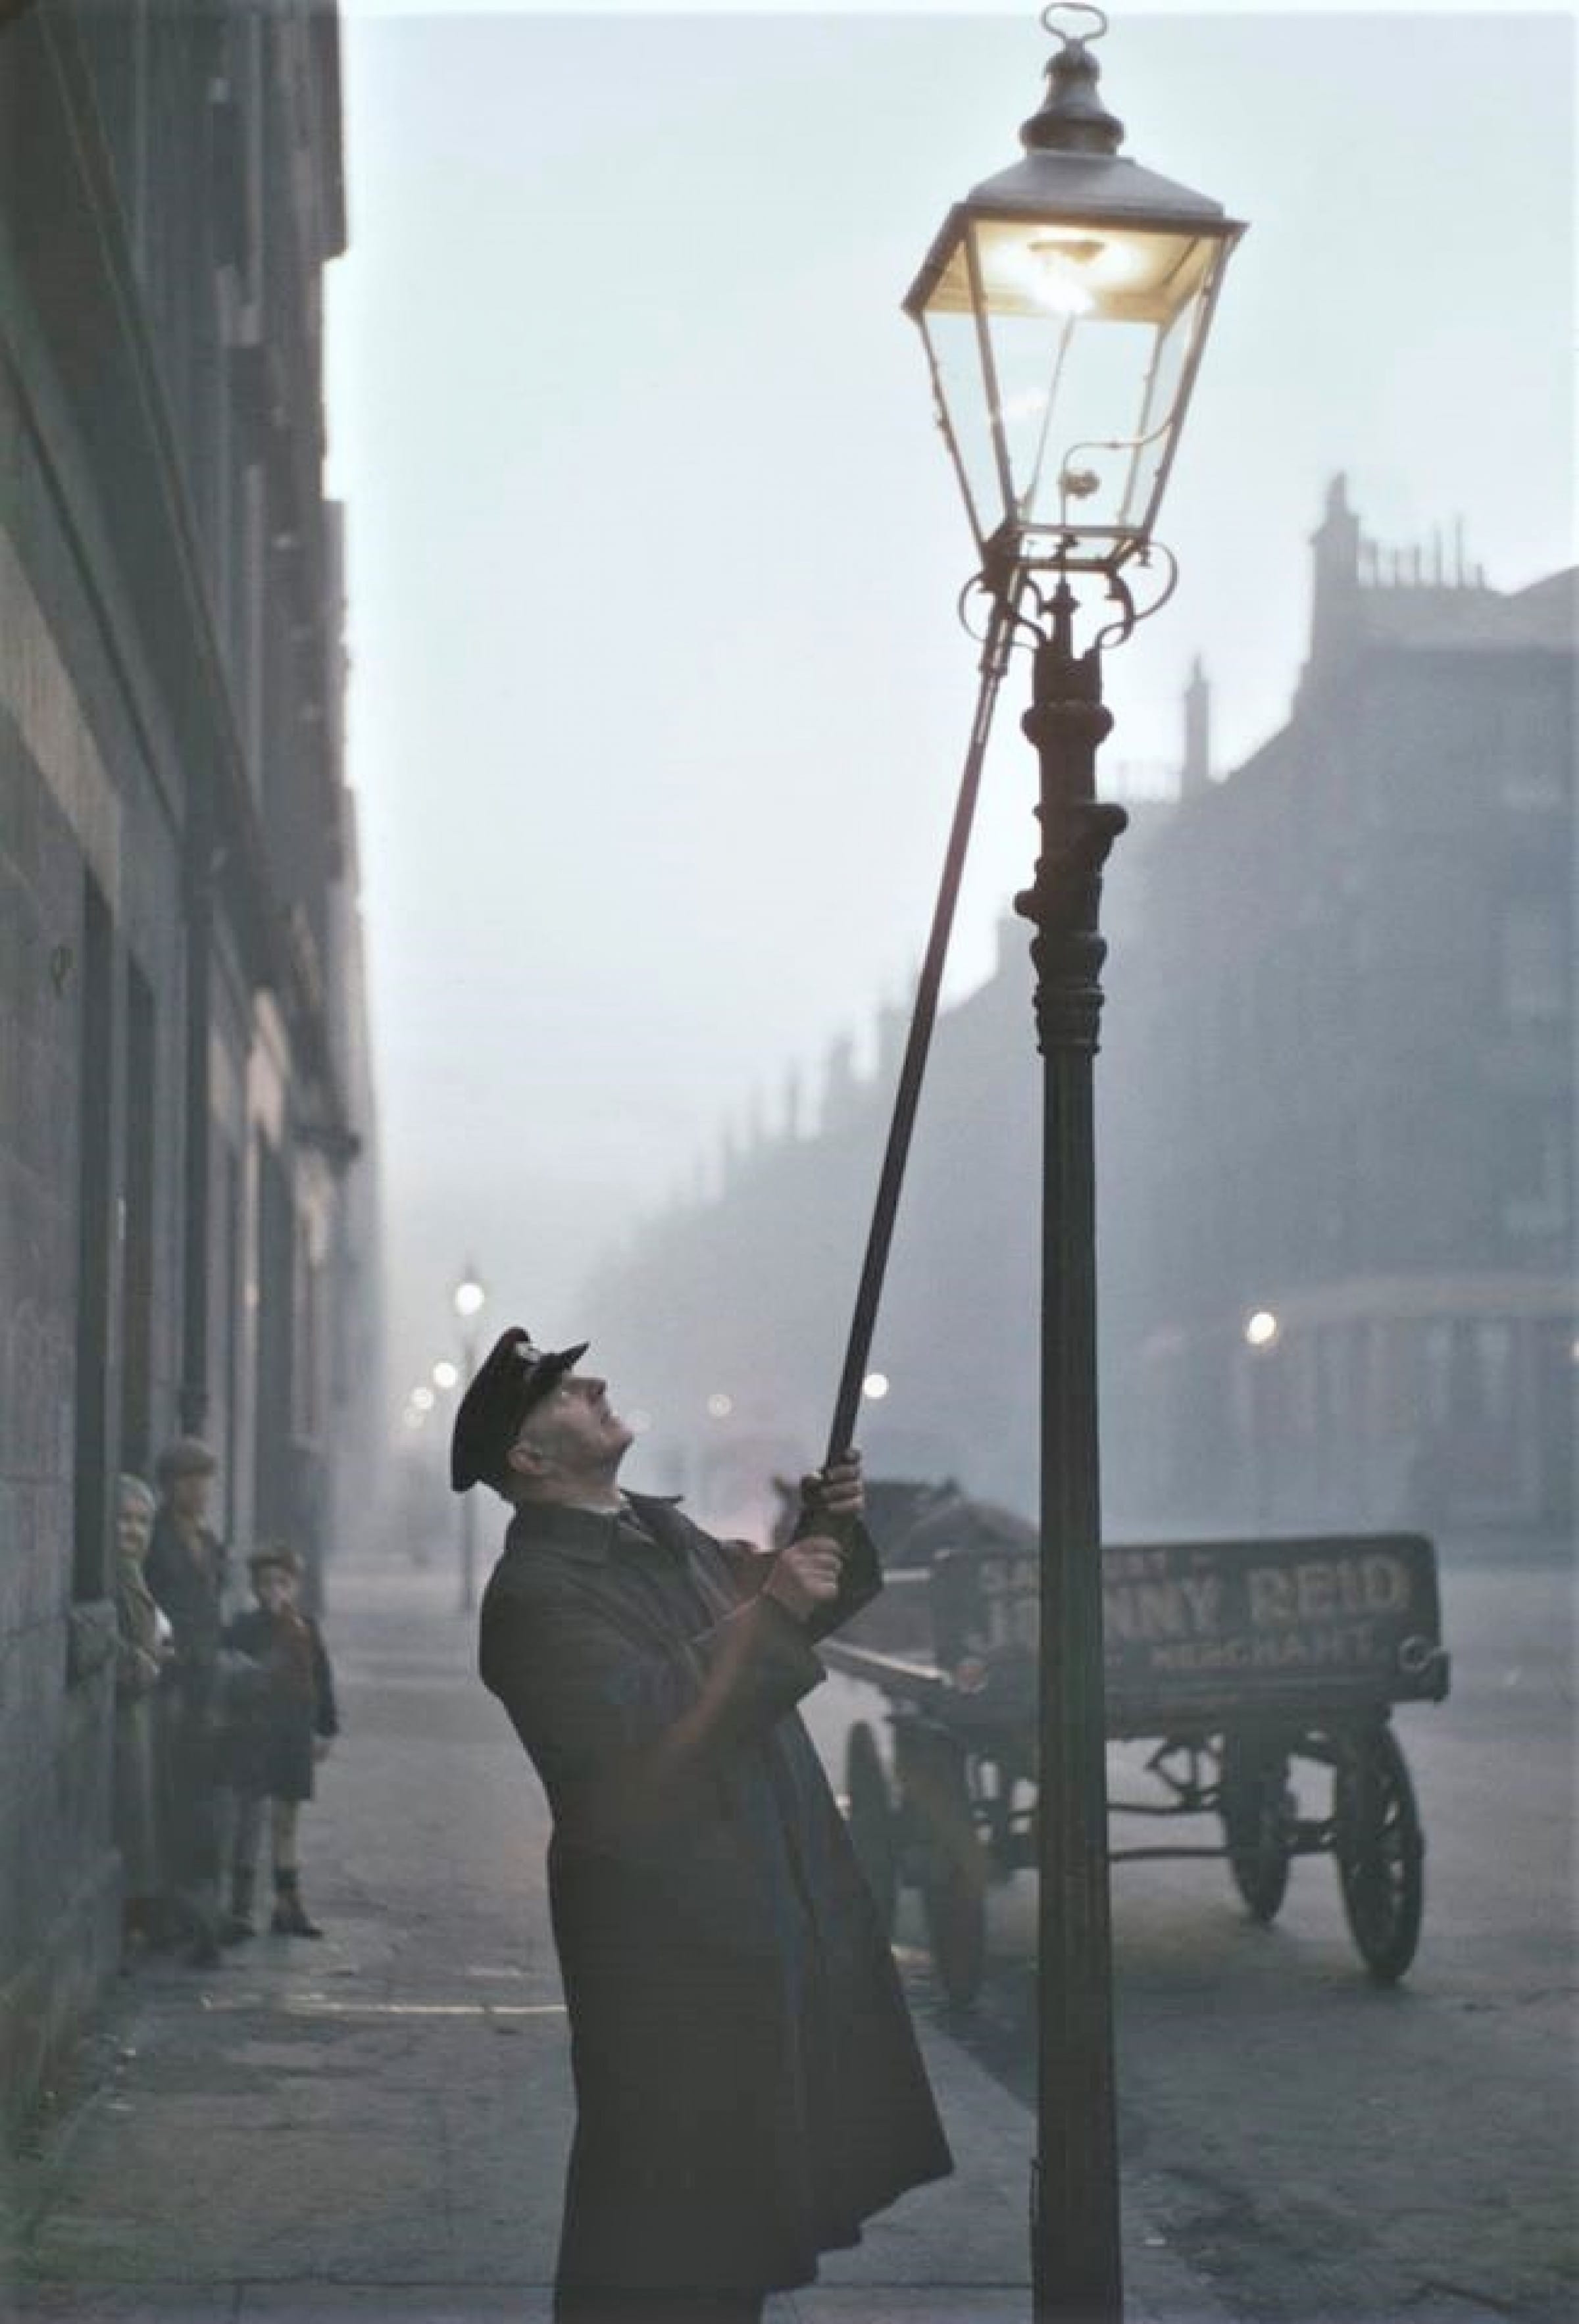 Strike a light (A 'Leerie' lights a street gas lamp, 1955 (Picture Post))